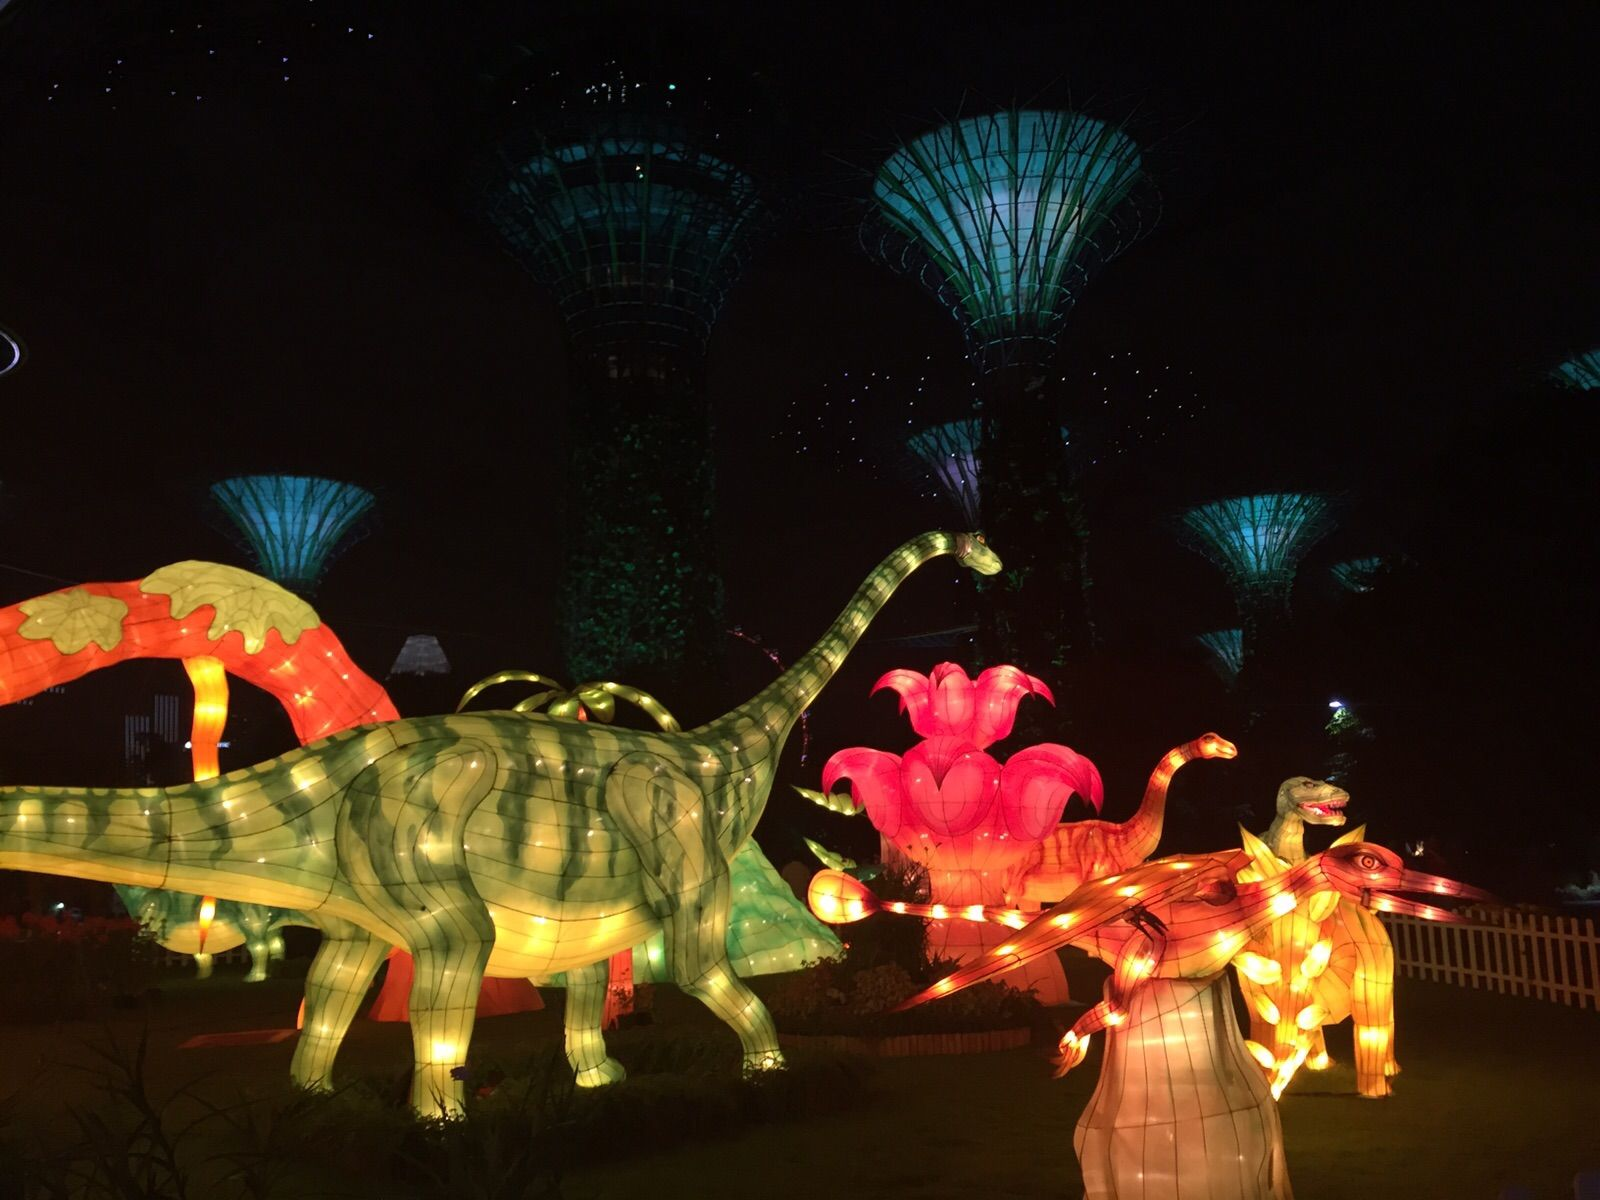 Superieur 300 Lanterns On Display At Gardens By The Bay For Mid Autumn Festival    Channel